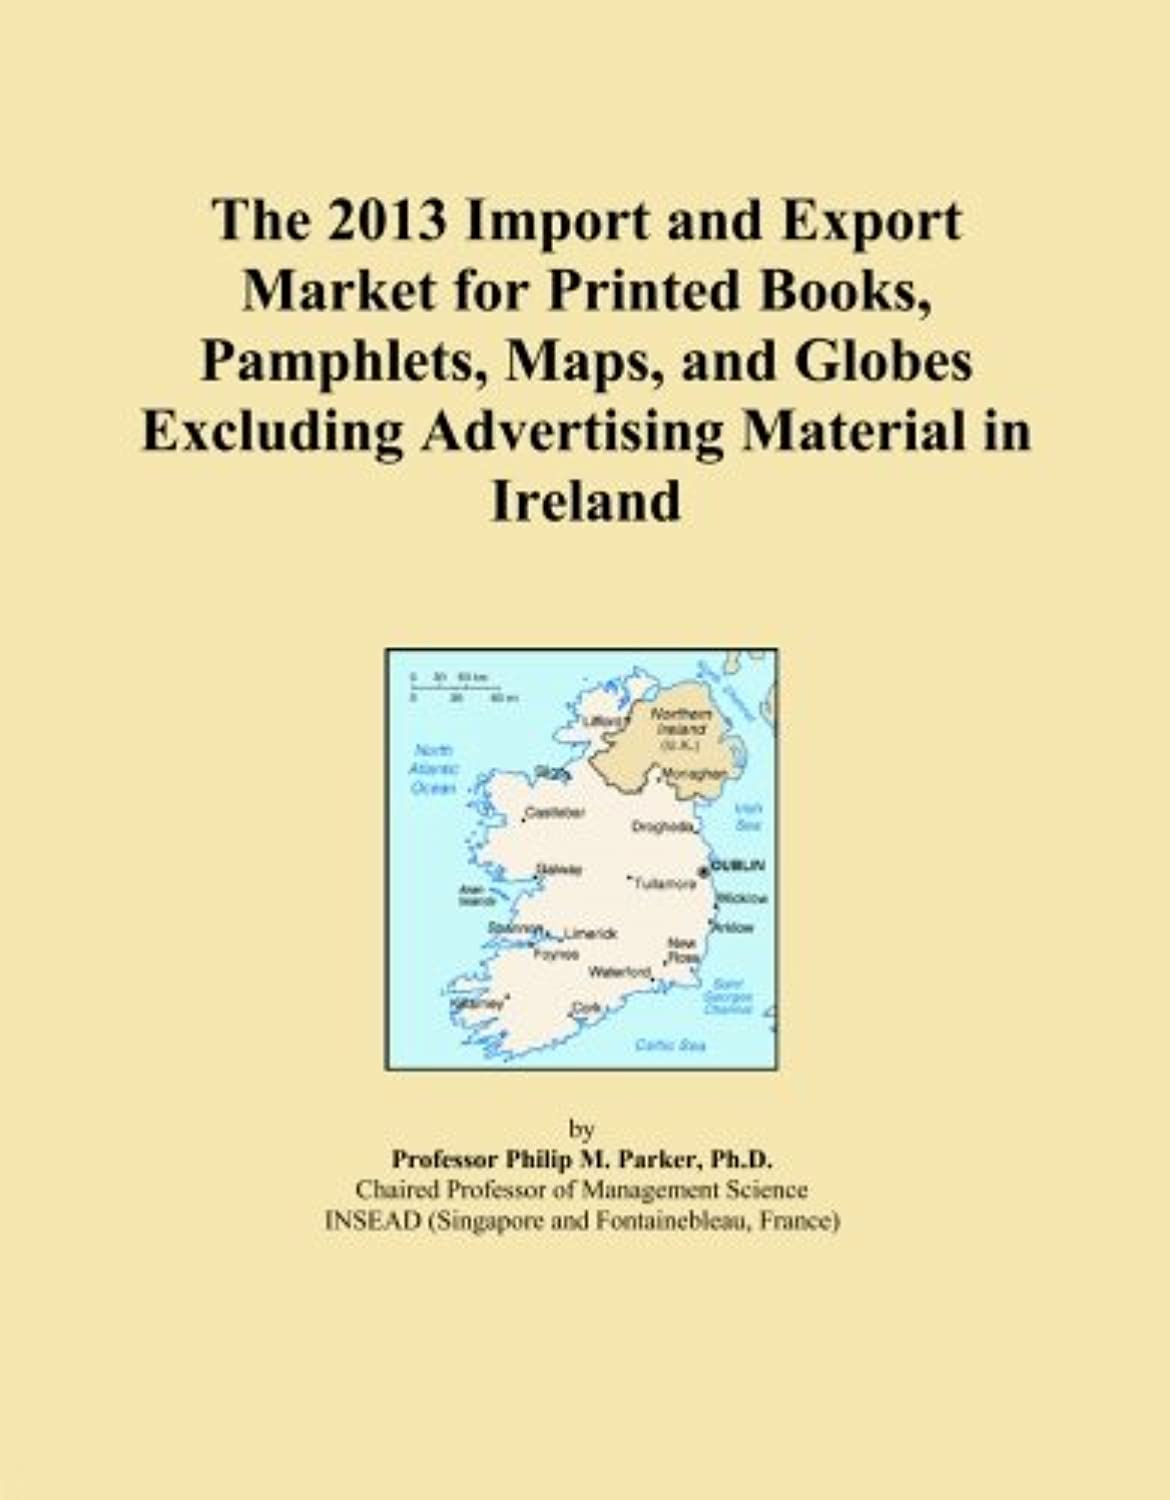 The 2013 Import and Export Market for Printed Books, Pamphlets, Maps, and Globes Excluding Advertising Material in Ireland